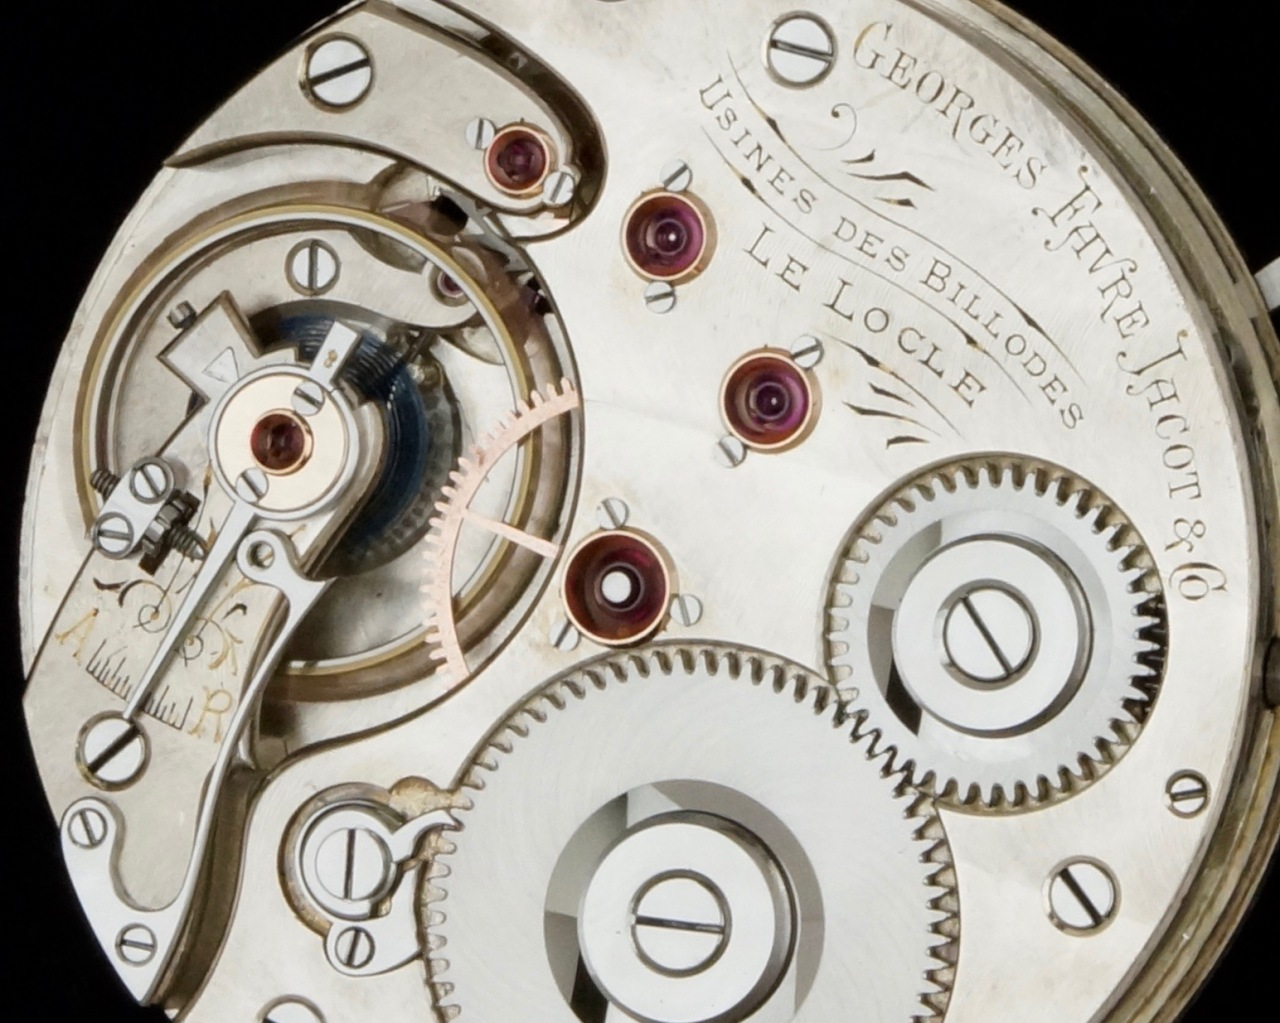 1475311198_georges_favre_jacot_zenith_usine_des_billodes_le_locle_montre_de_poche_chronometre_21